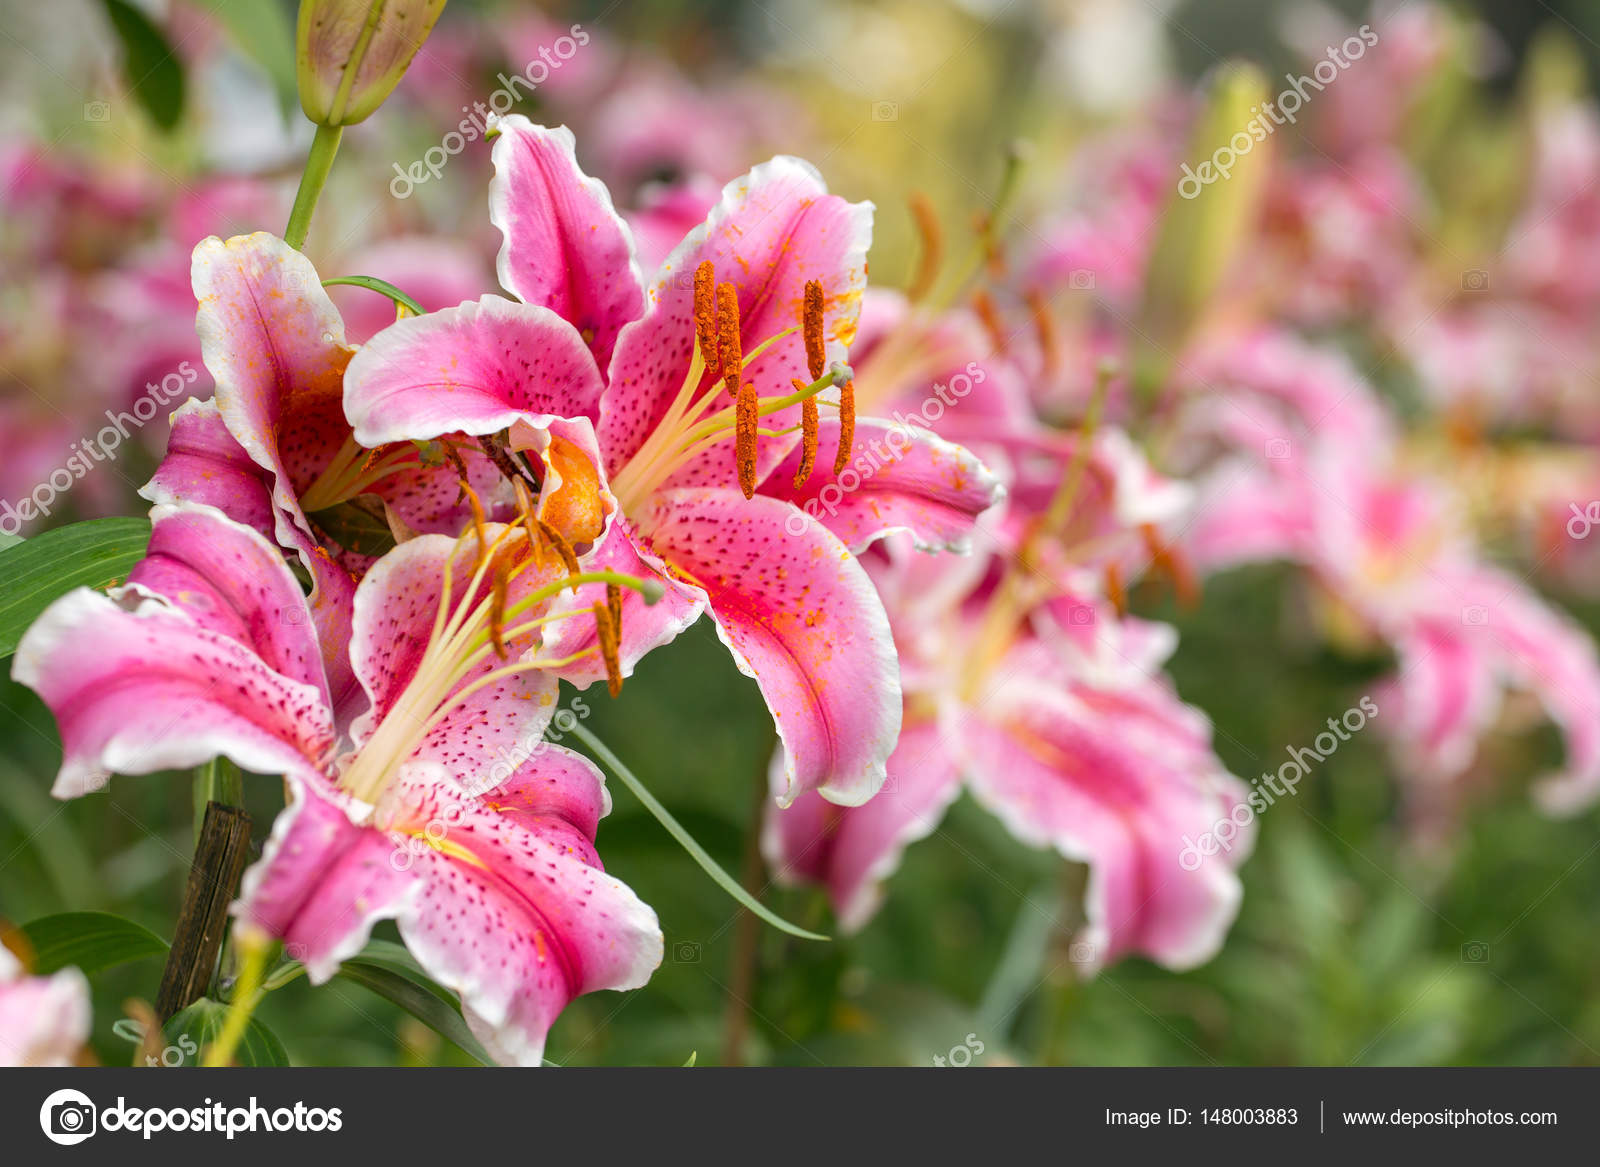 Pink asiatic lily flowers stock photo mazzzur 148003883 pink asiatic lily flowers stock photo izmirmasajfo